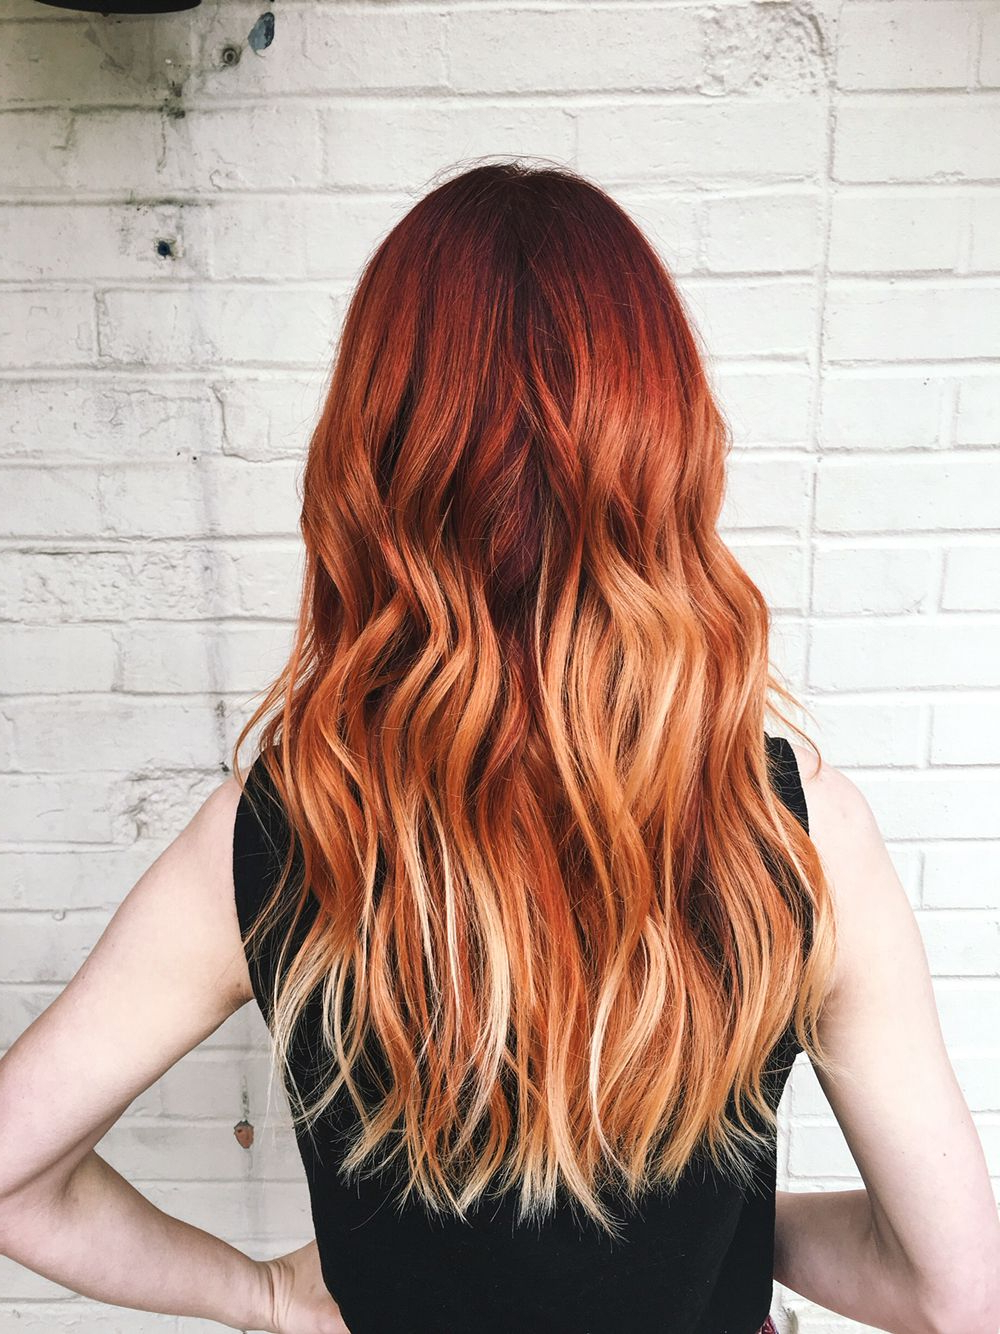 Pin On Hair Pertaining To Bright Red Balayage On Short Hairstyles (View 5 of 20)